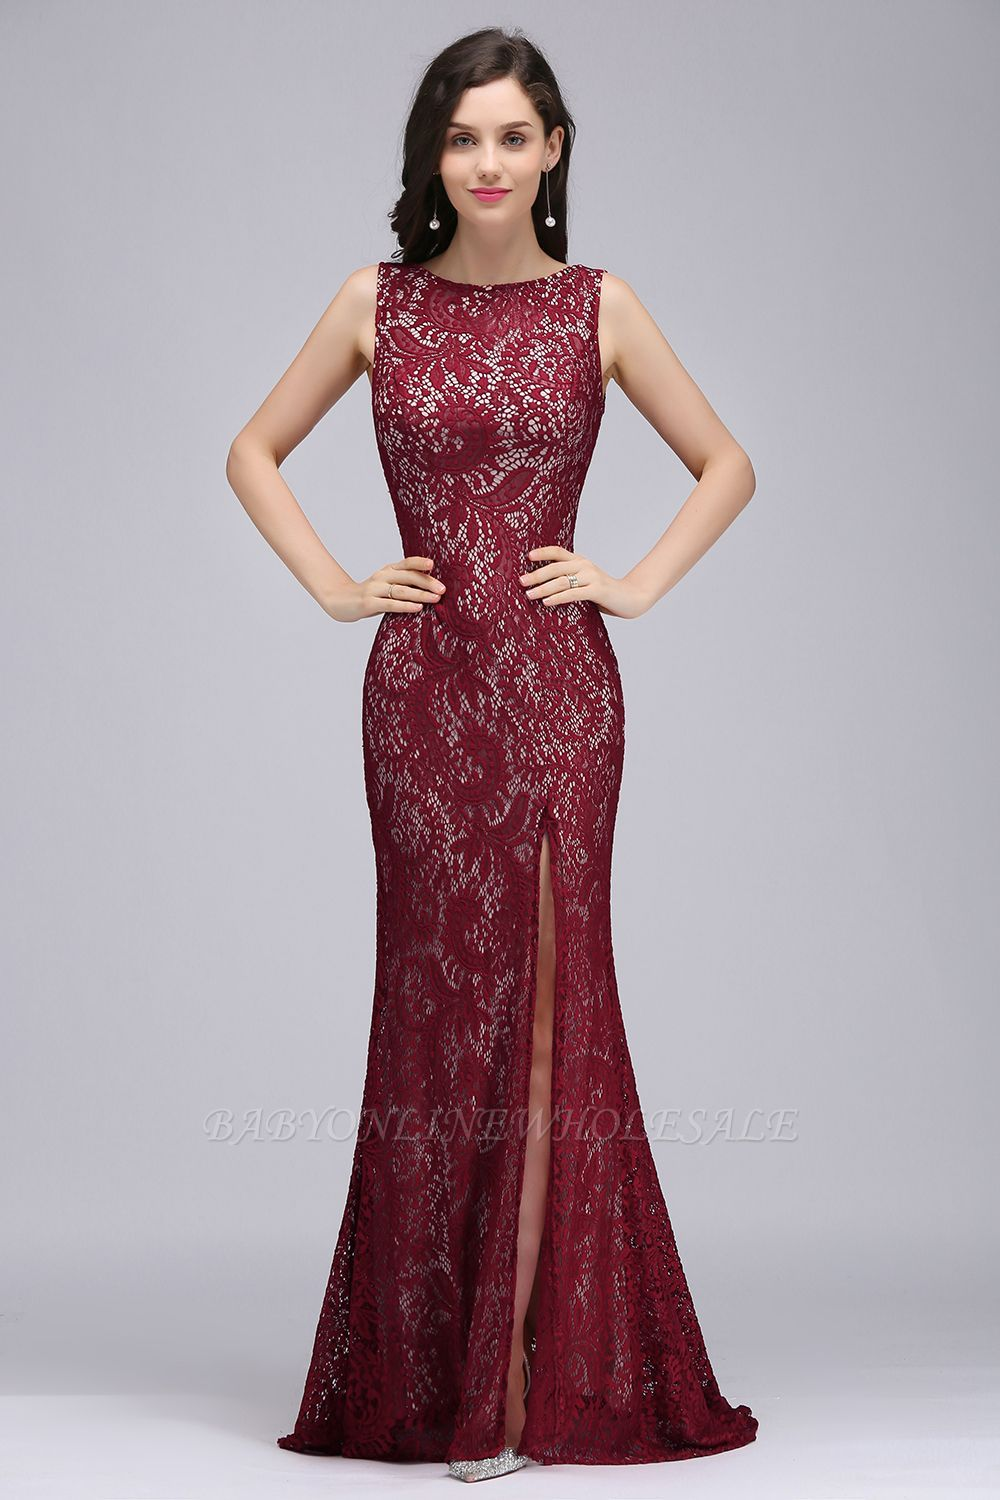 Dulce mermaid crew floorlength sleeveless burgundy lace prom